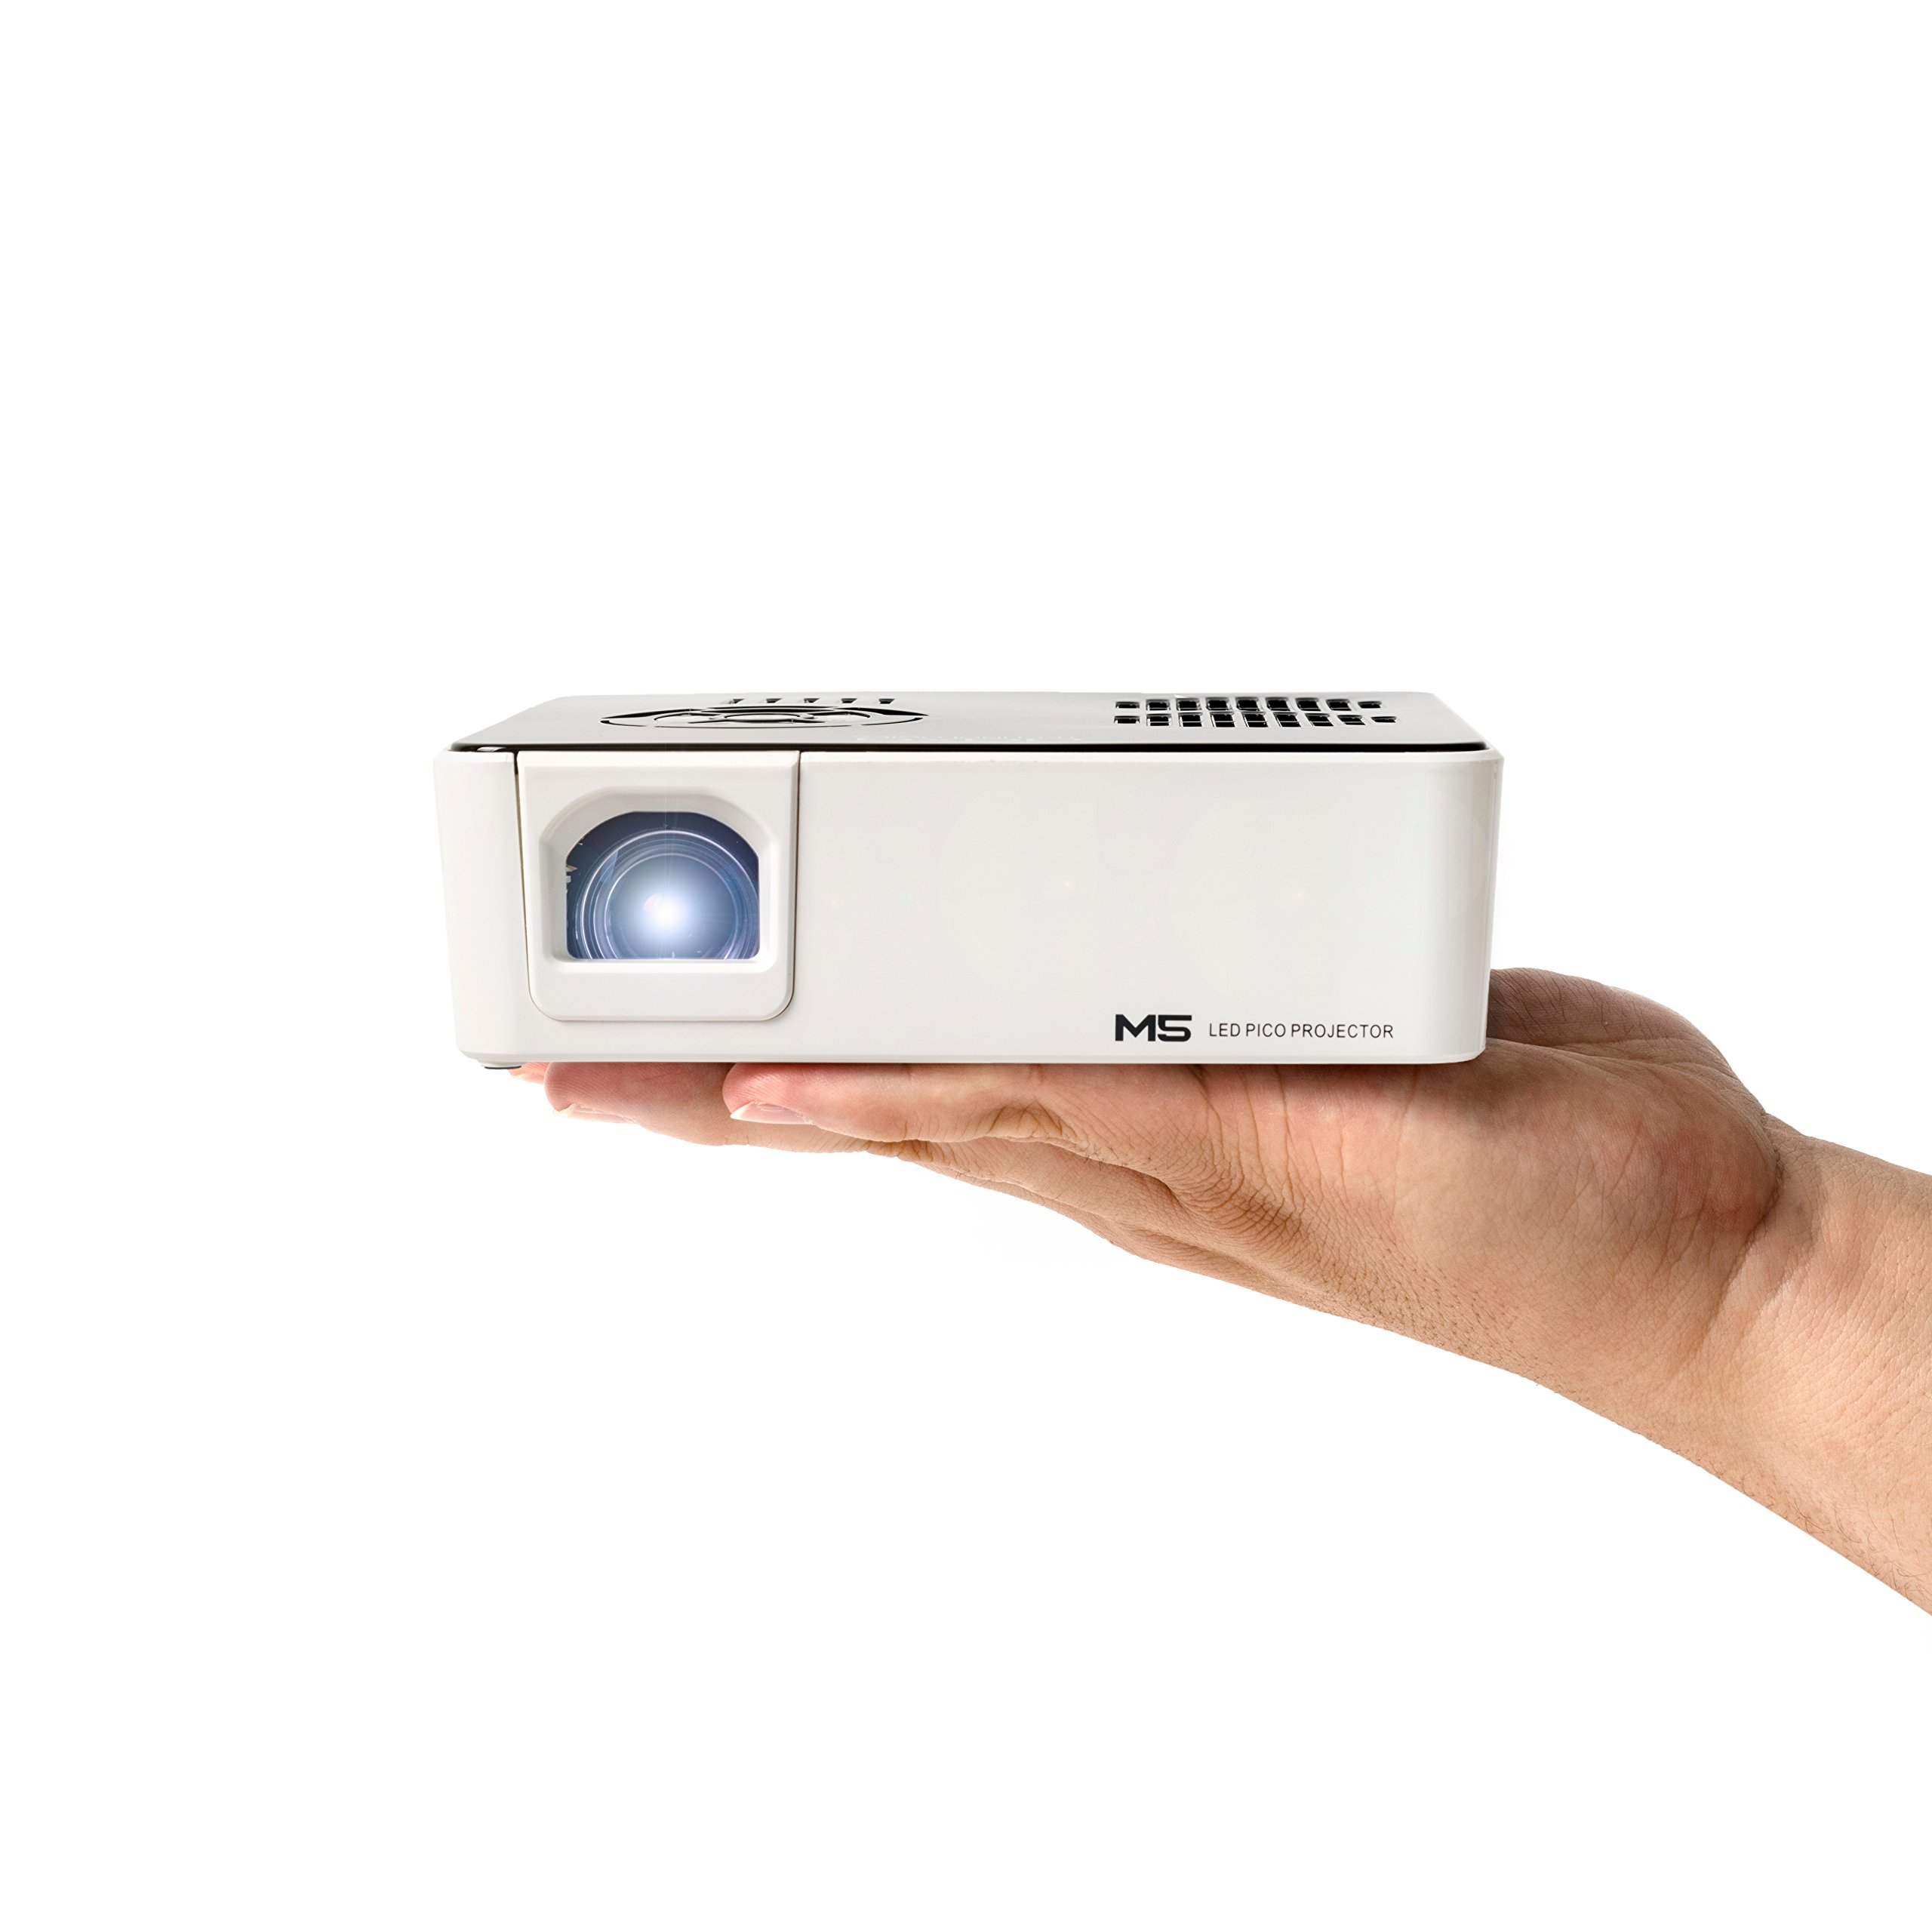 AAXA M5 Mini Portable Business Projector with Built-in Battery, 900 Lumens High Brightness, Native WXGA HD Resolution, Onboard Media Player, 20,000 Hours LED by AAXA Technologies